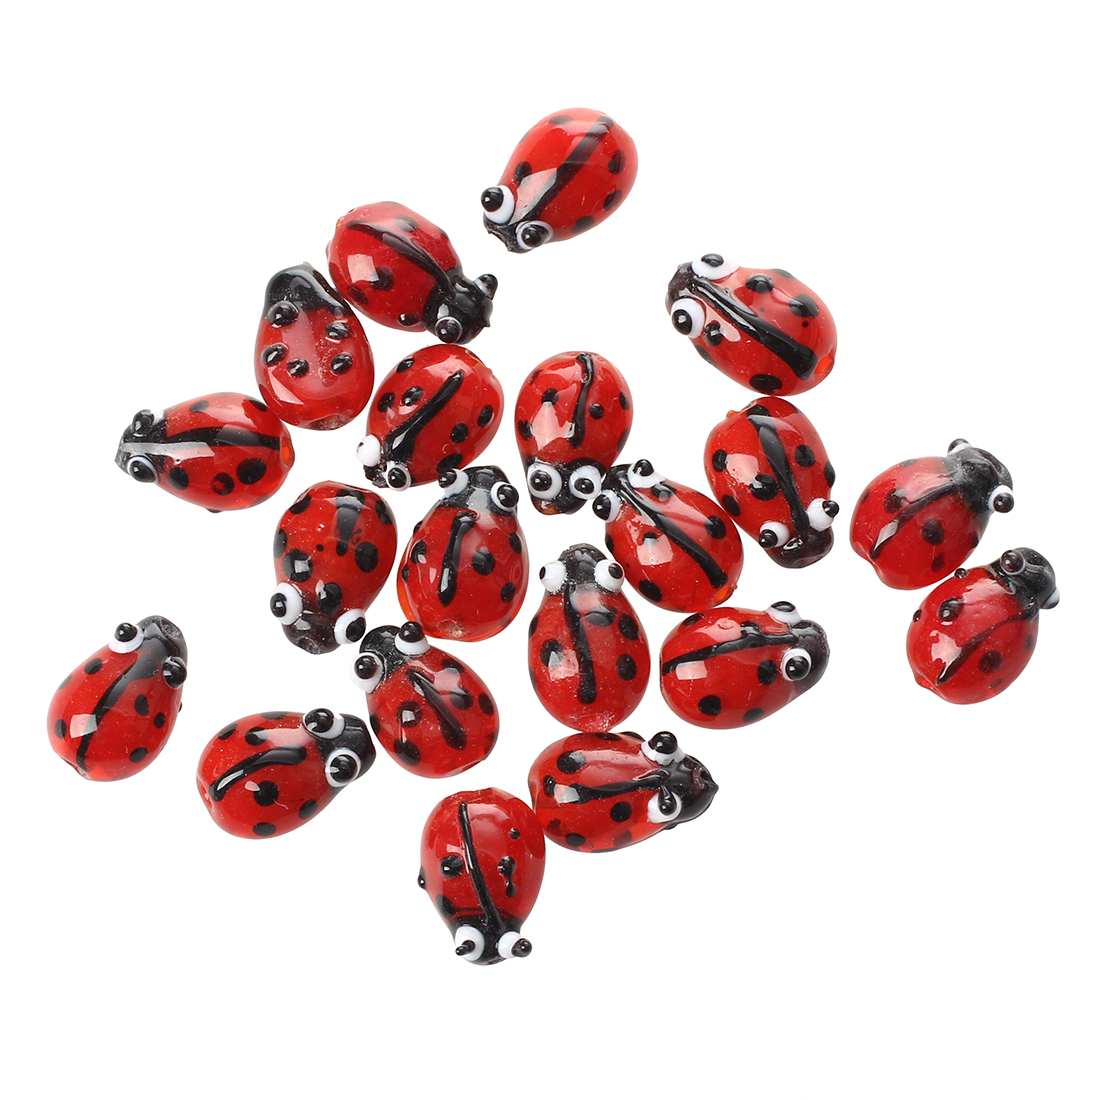 6 X RED LADYBIRD ENAMEL COATED CHARMS//PENDANTS GREAT FOR JEWELLERY MAKING